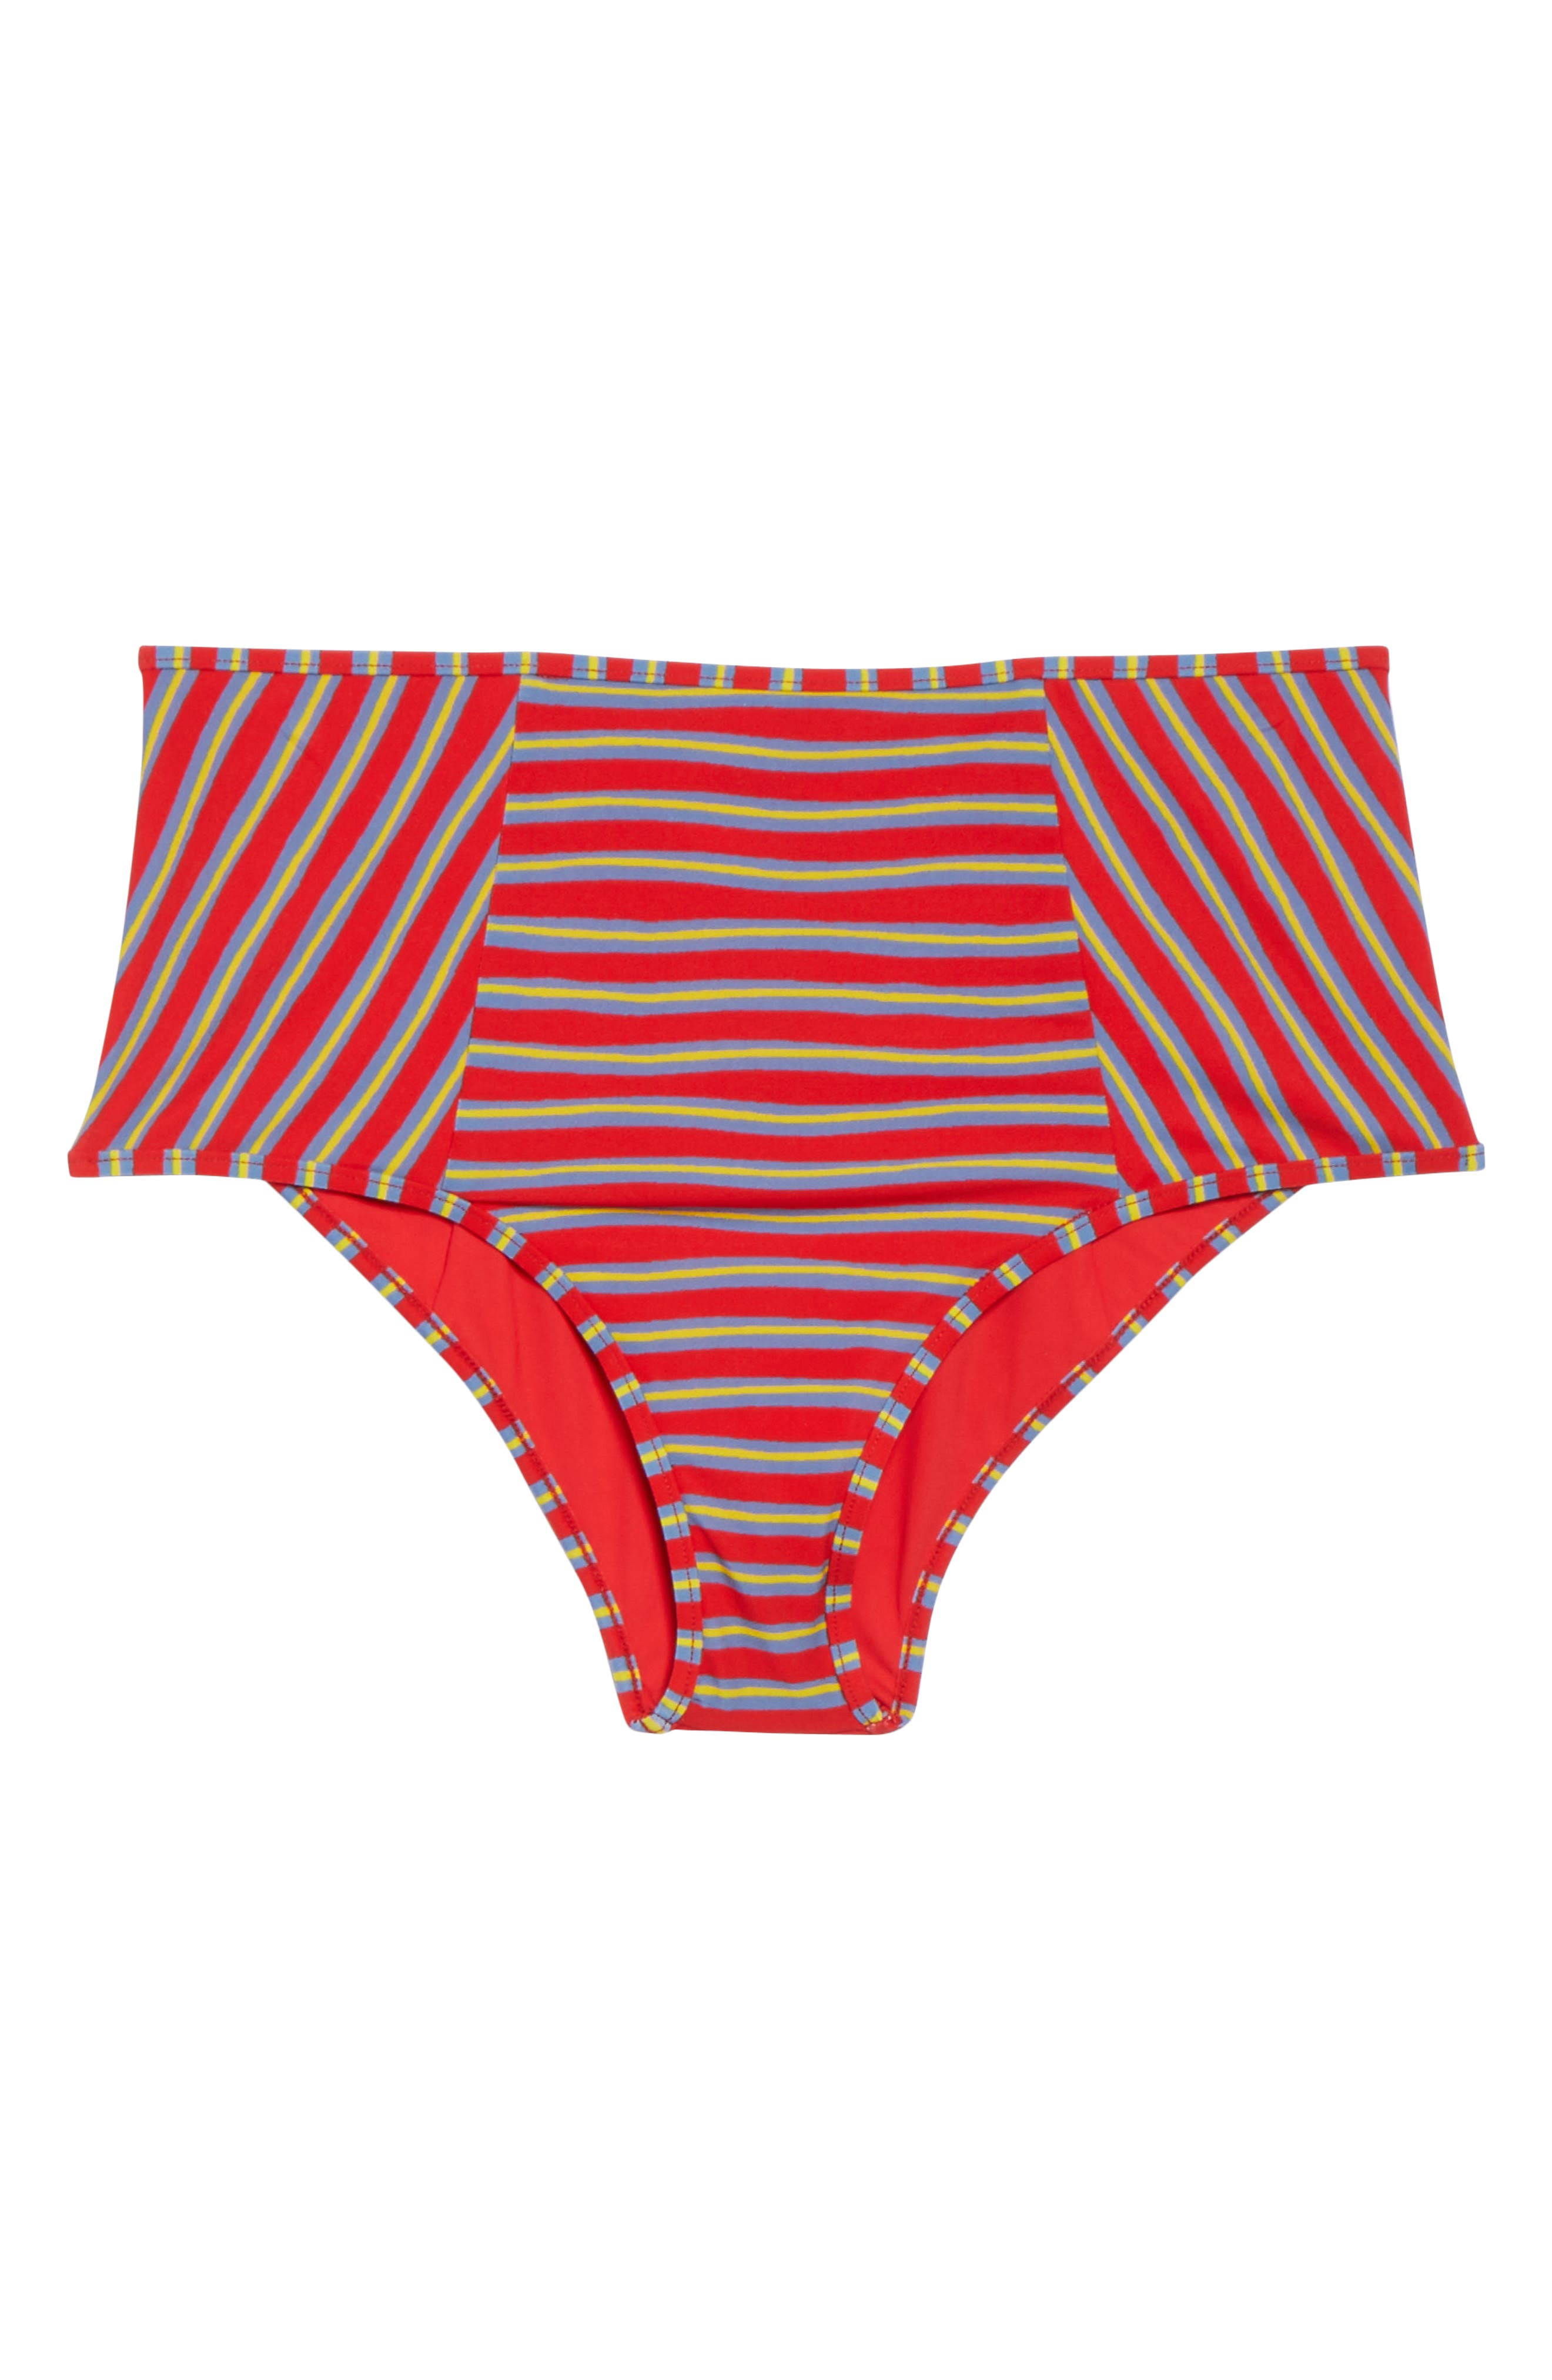 High Waist Swim Briefs,                             Alternate thumbnail 9, color,                             Bodin Stripe Bright Red